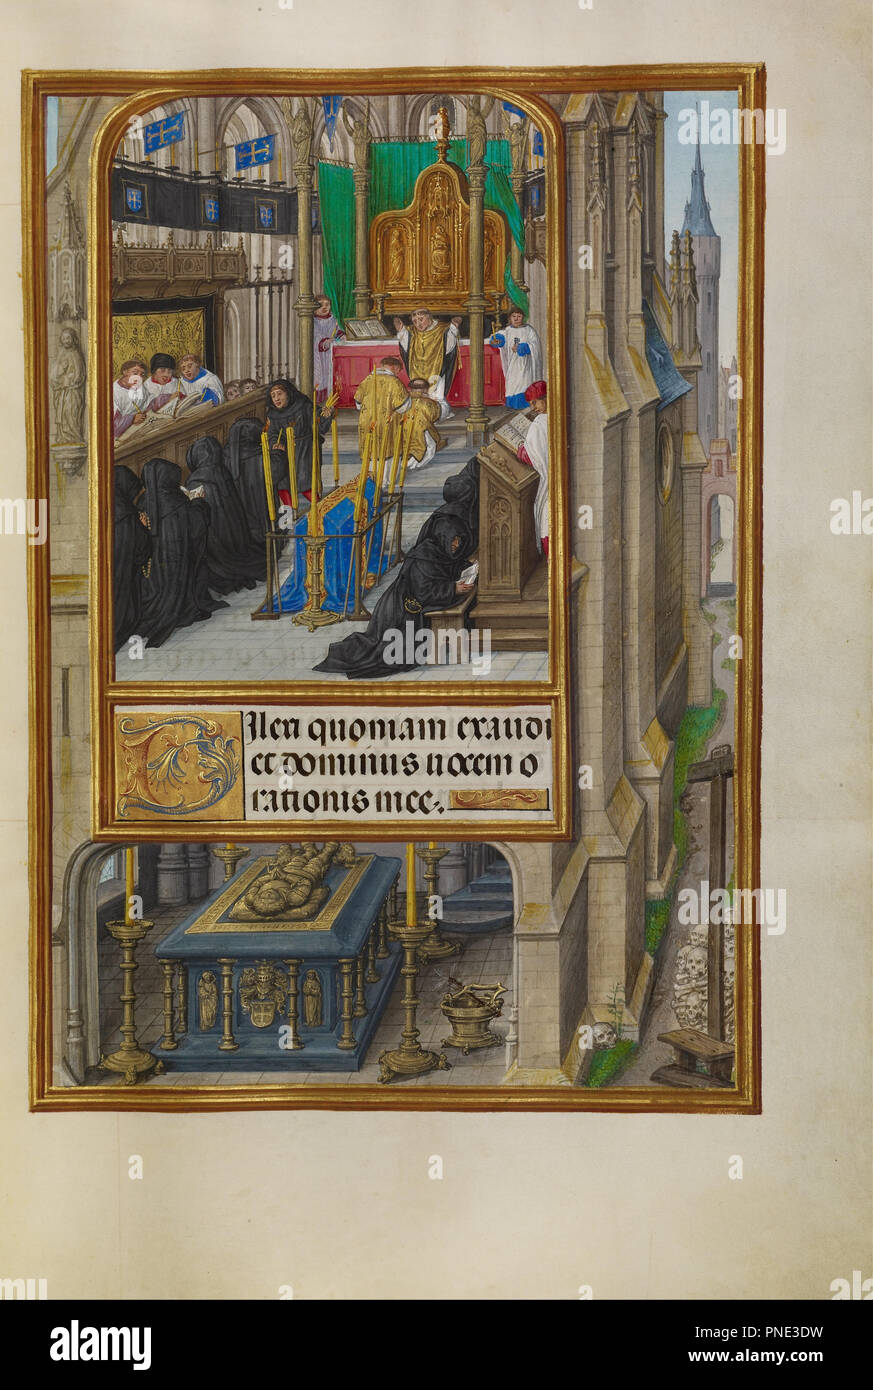 Office of the Dead. Date/Period: Ca. 1510 - 1520. Folio. Tempera colors, gold, and ink on parchment. Height: 232 mm (9.13 in); Width: 167 mm (6.57 in). Author: Master of James IV of Scotland. - Stock Image